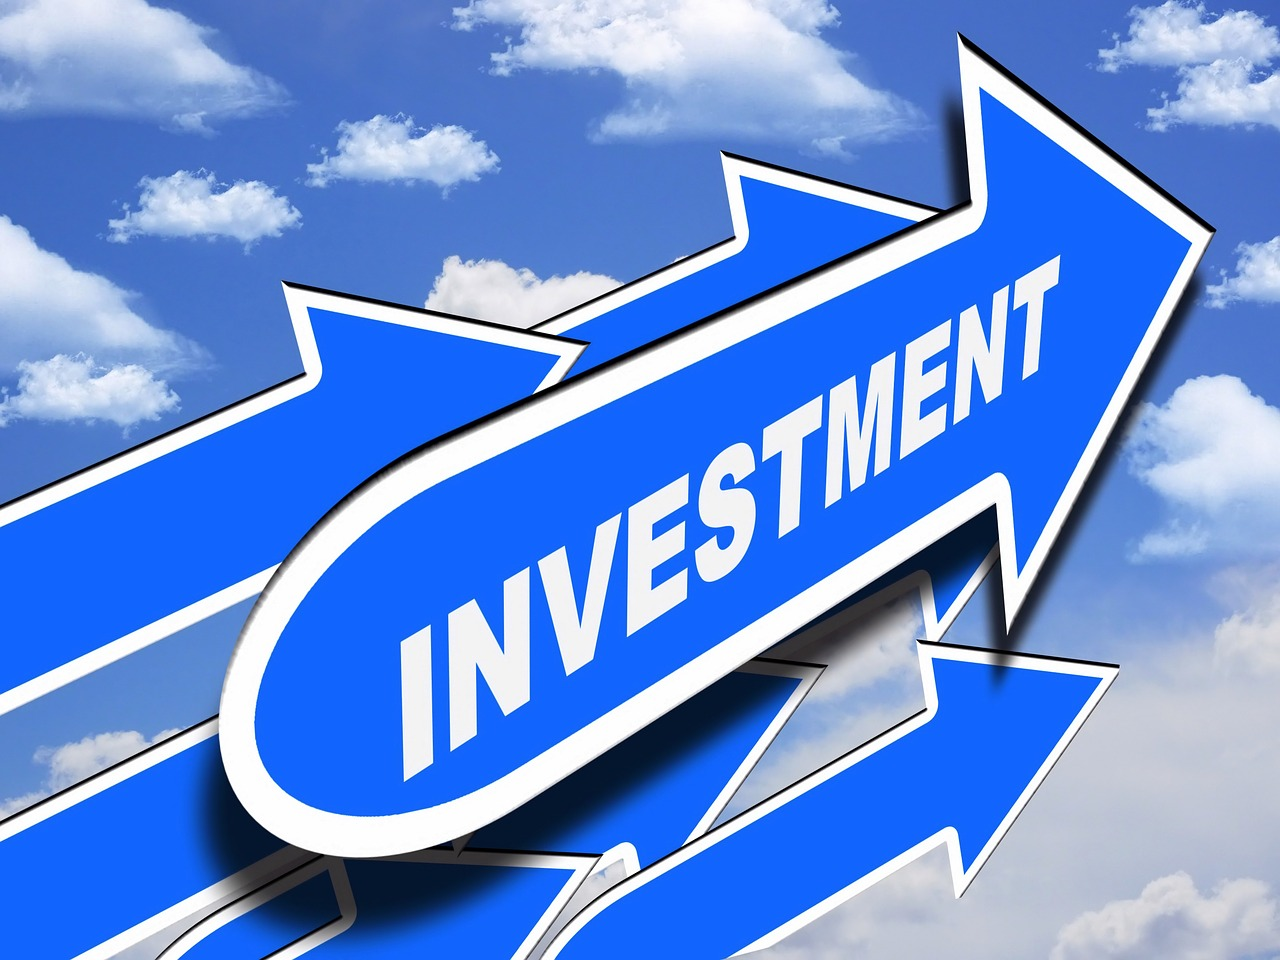 invest money plant investment capital investment public domain image - FreeIMG